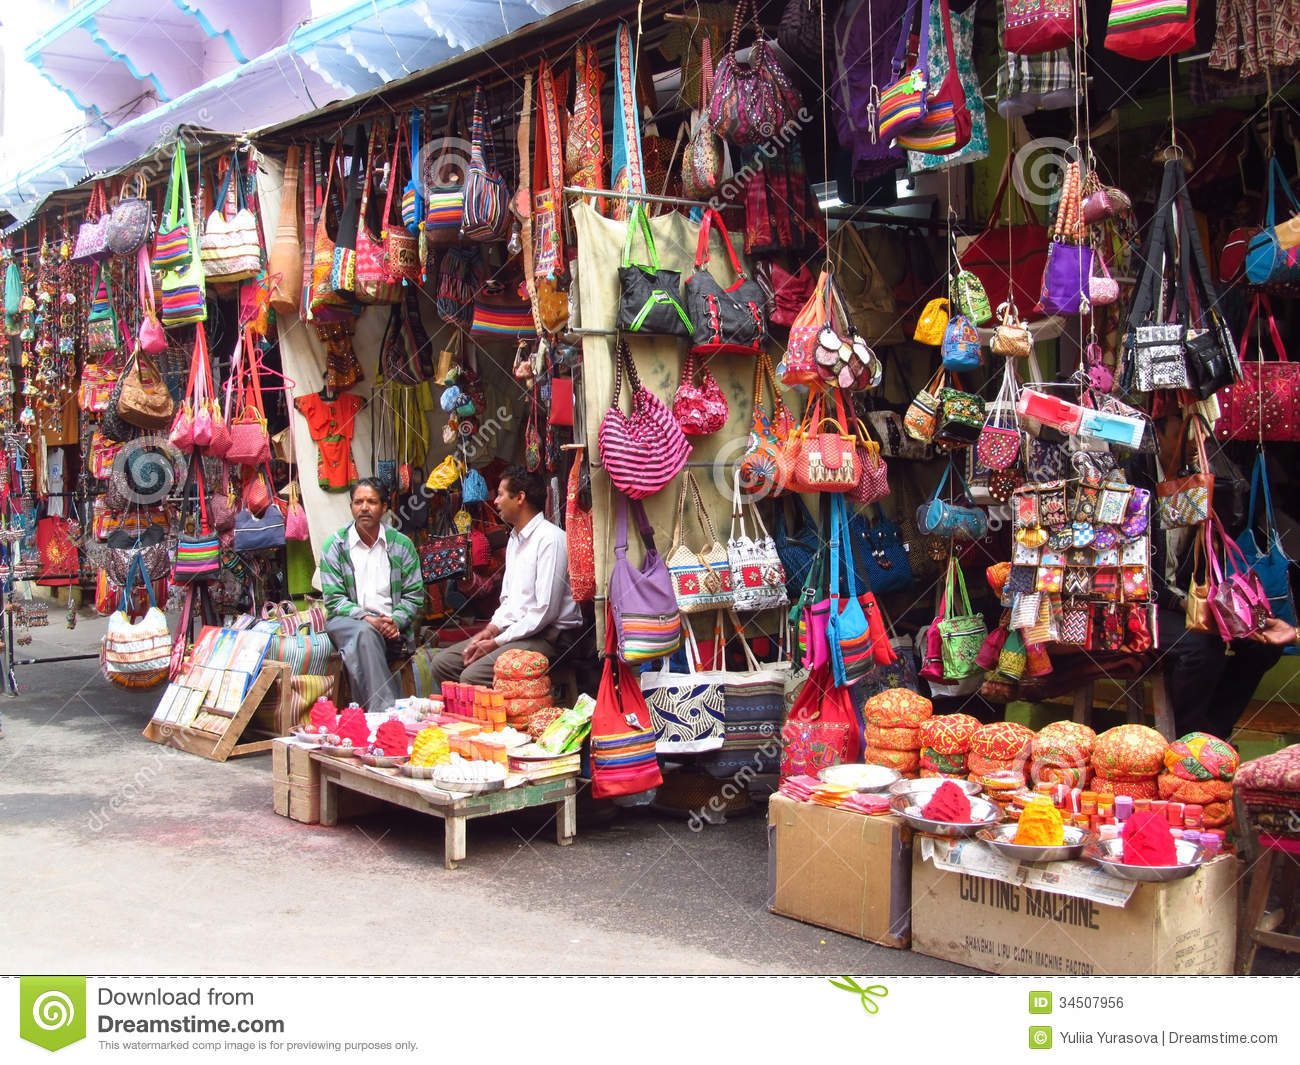 hindu single men in webb city File - in this nov 18, 2016, file photo, men trade buy and sell indian rupees at a roadside stall set up by shri jalaram gaushala, a shelter for cows, in ahmadabad, india.